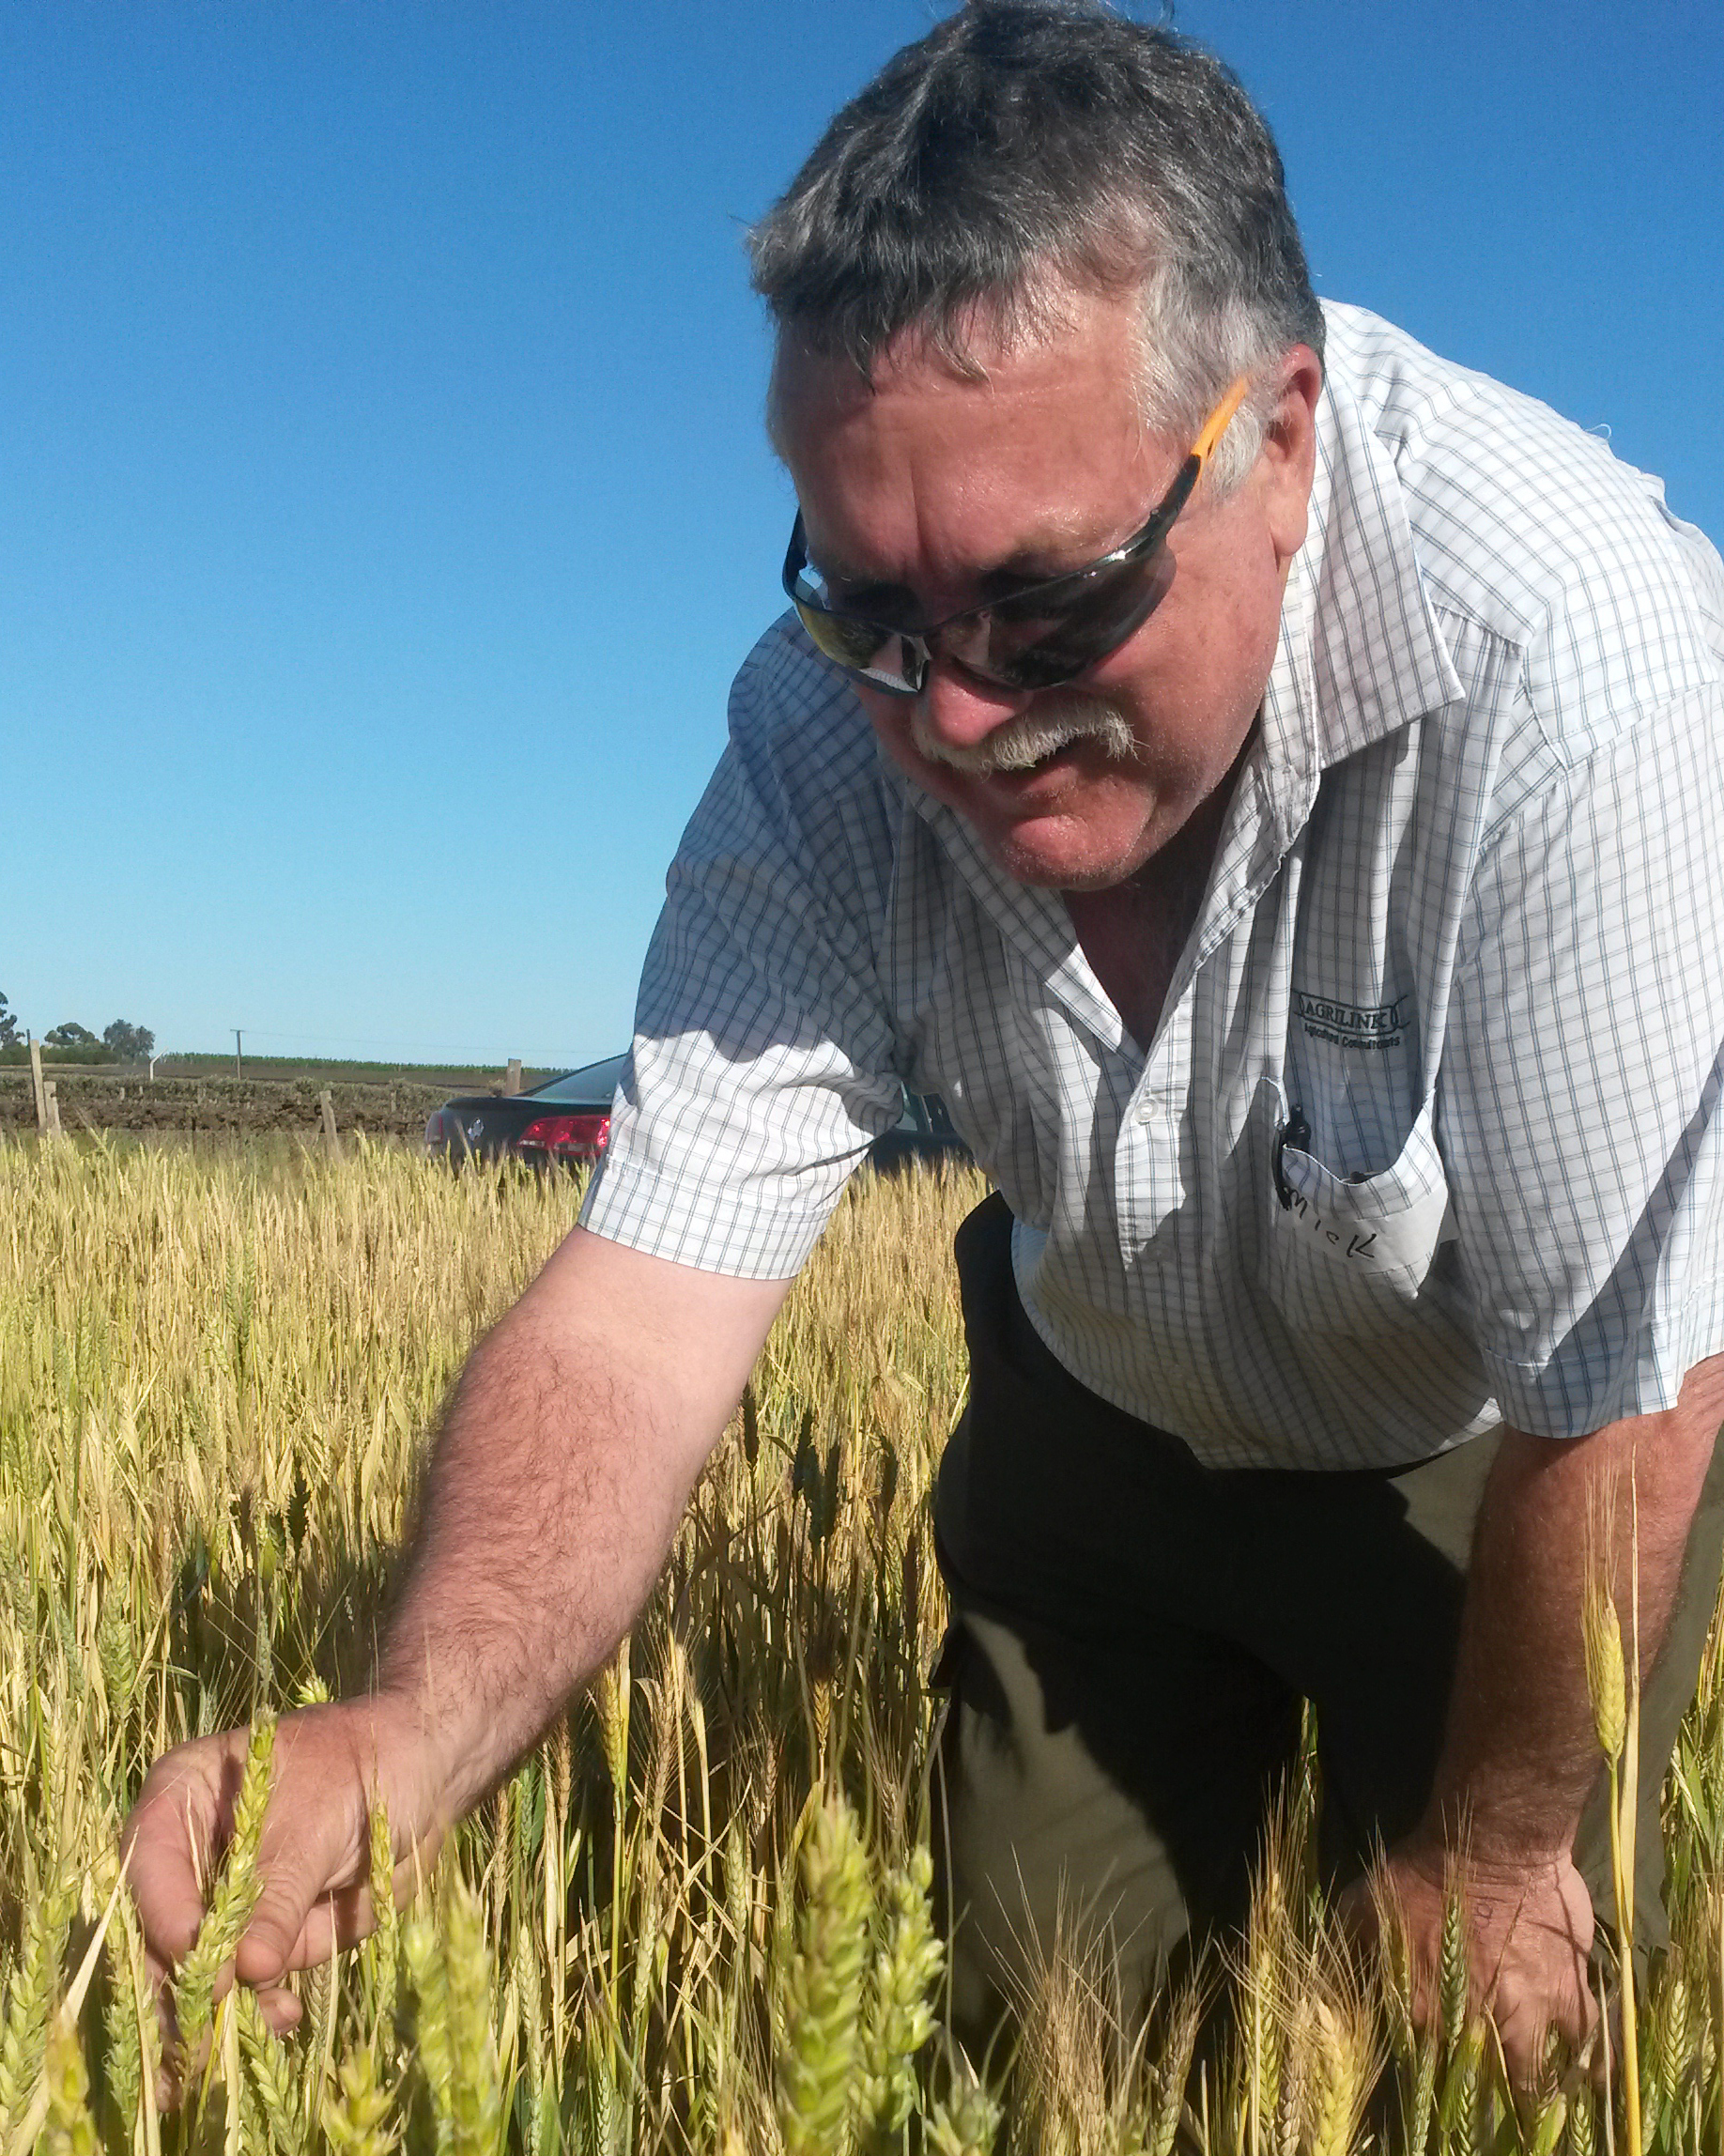 Mick Faulkner inspecting frost damage